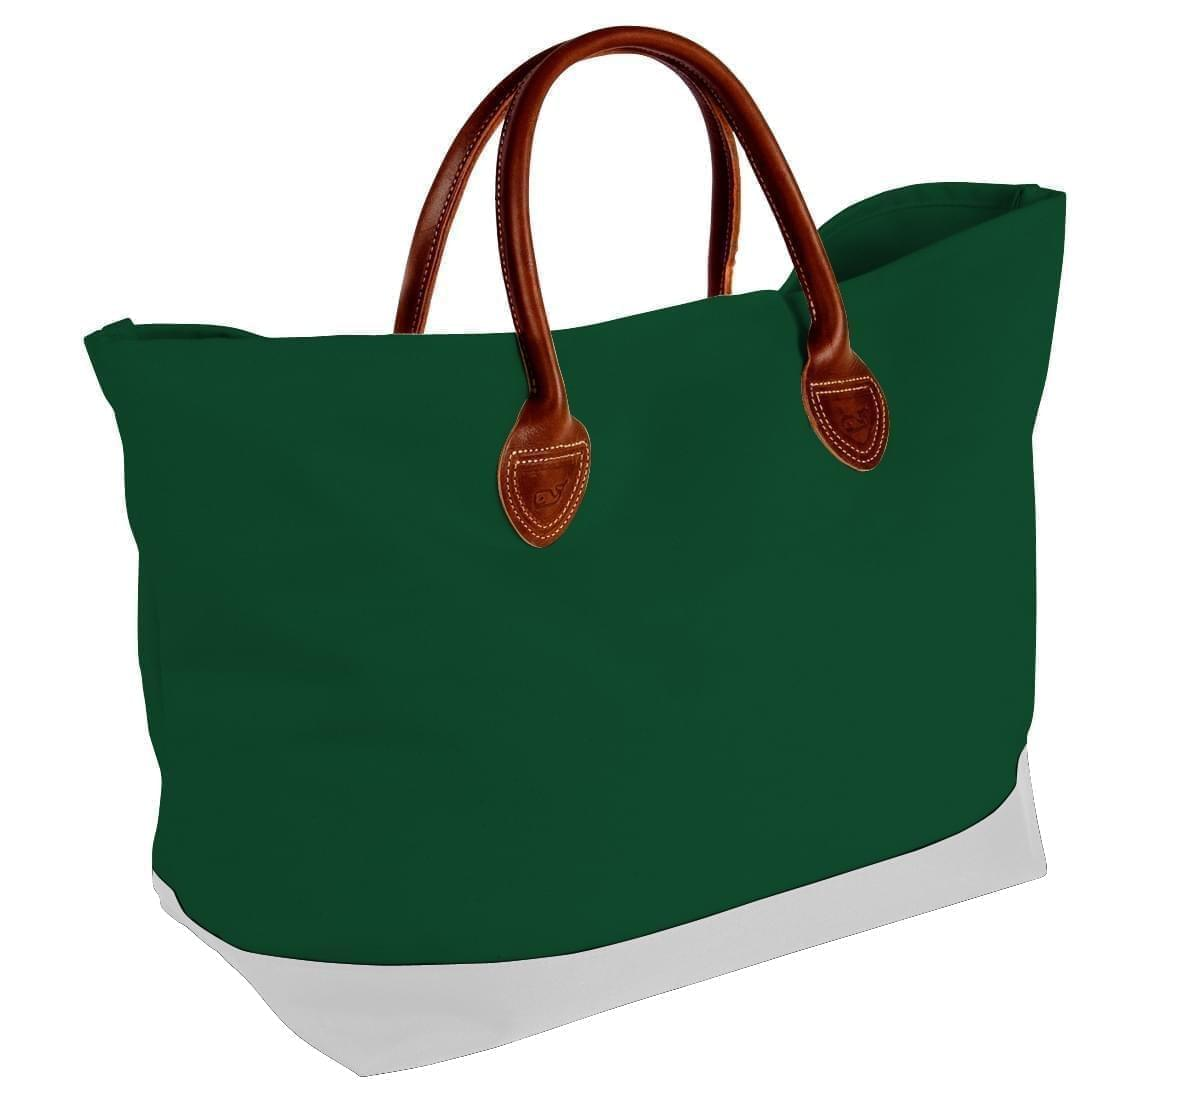 USA Made Canvas Leather Handle Totes, Hunter Green-White, 10899-PI9